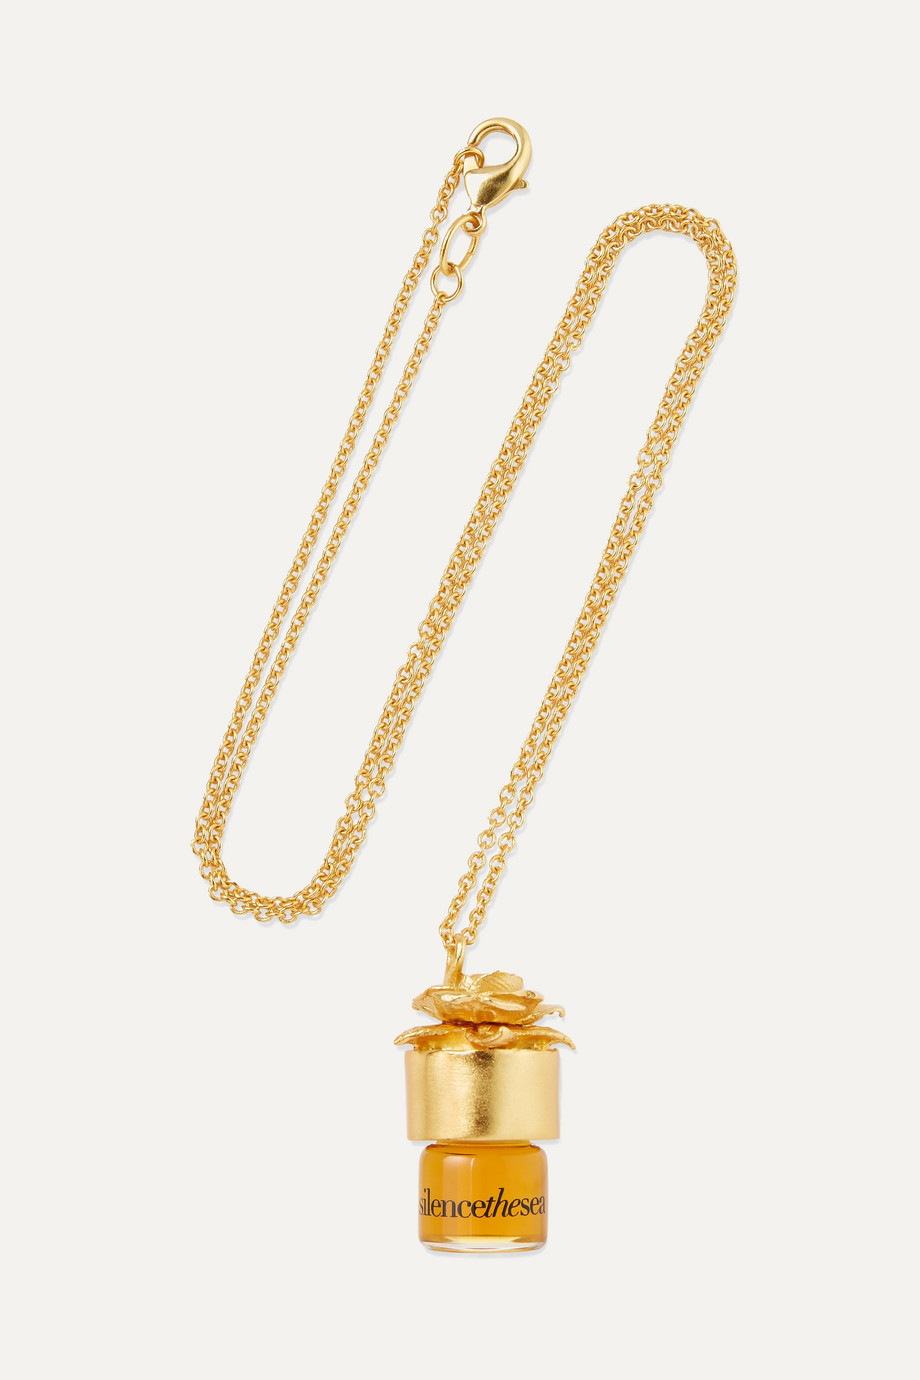 strangelove nyc Perfume Oil Necklace - silencethesea, 1.25ml